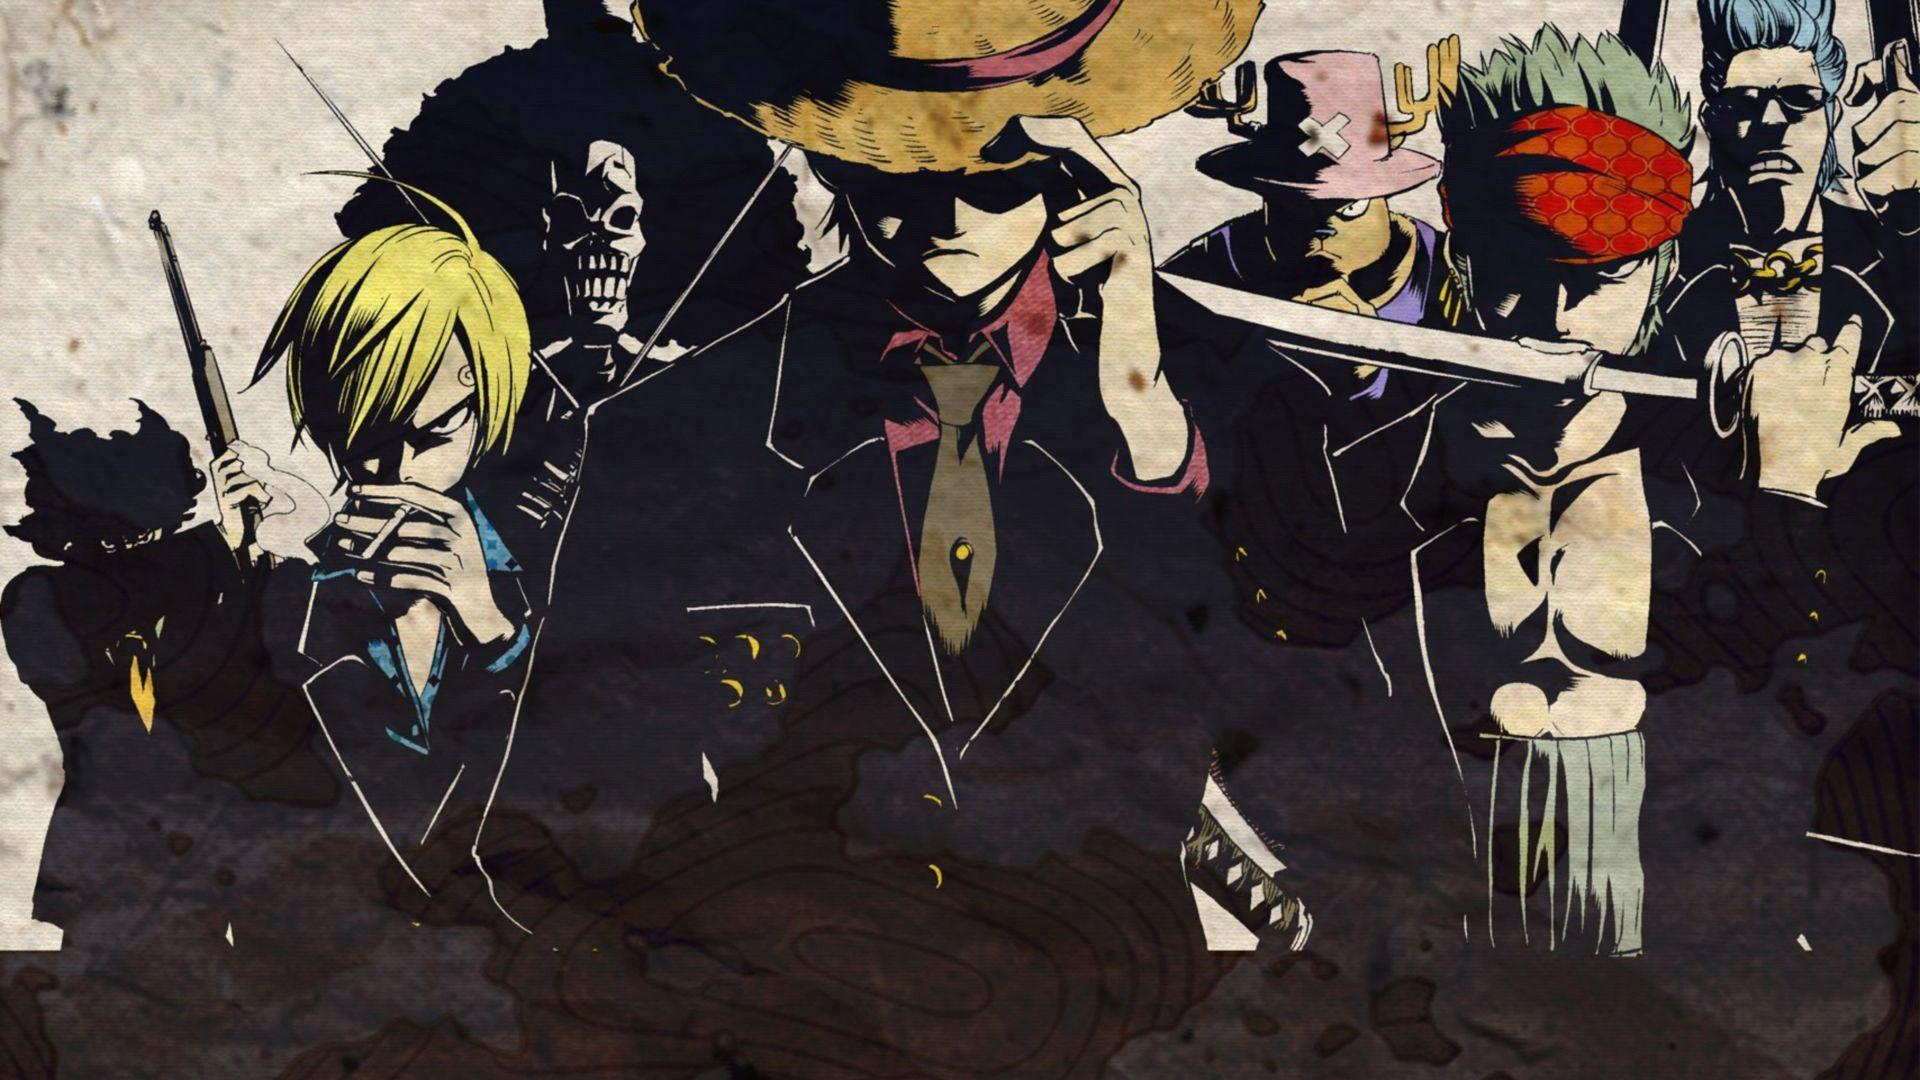 Wallpapers For > One Piece Wallpapers Hd 1920x1080